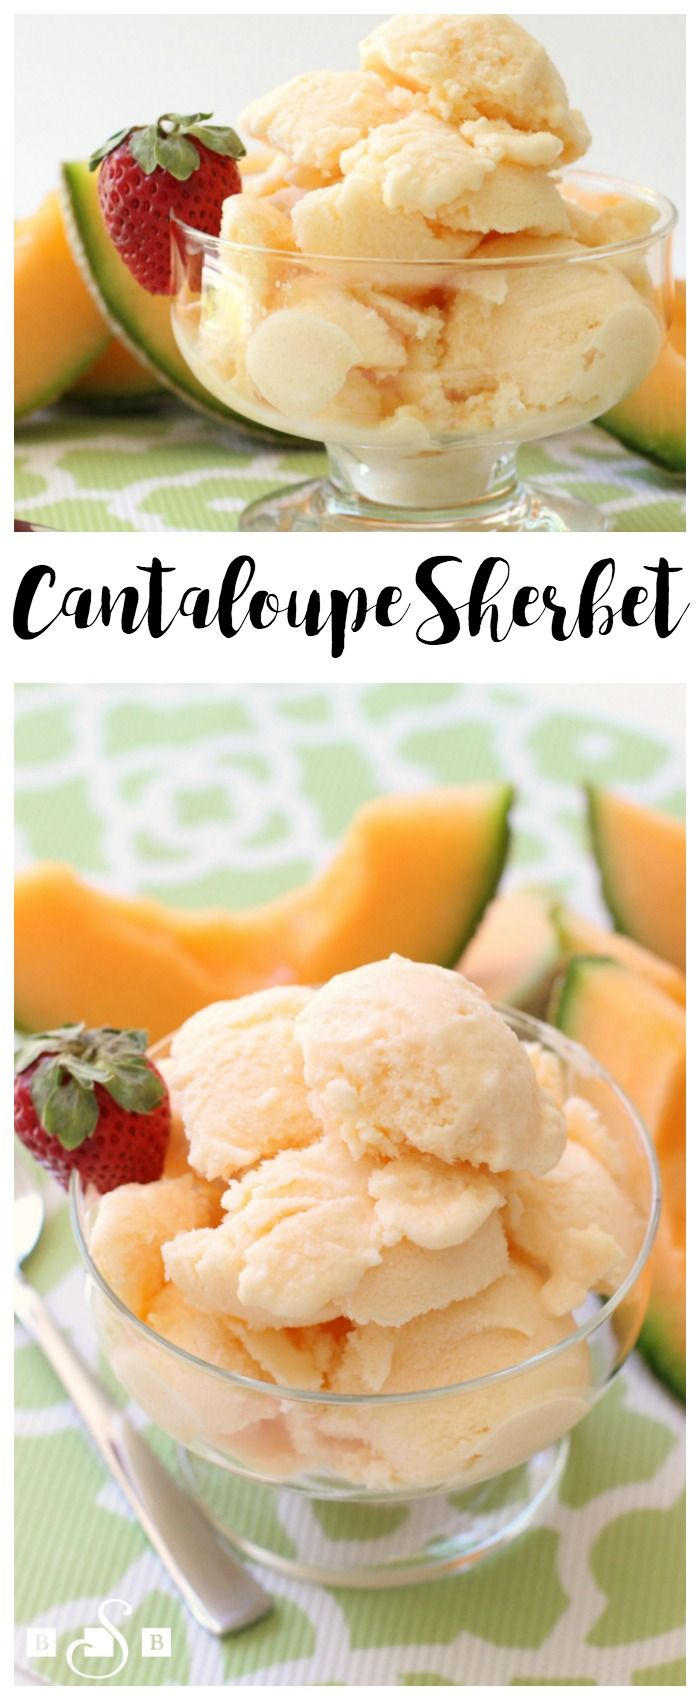 Cantaloupe Sherbet - Butter With A Side of Bread -- you'll love the sweet cantaloupe flavor in this simple recipe for homemade sherbet!